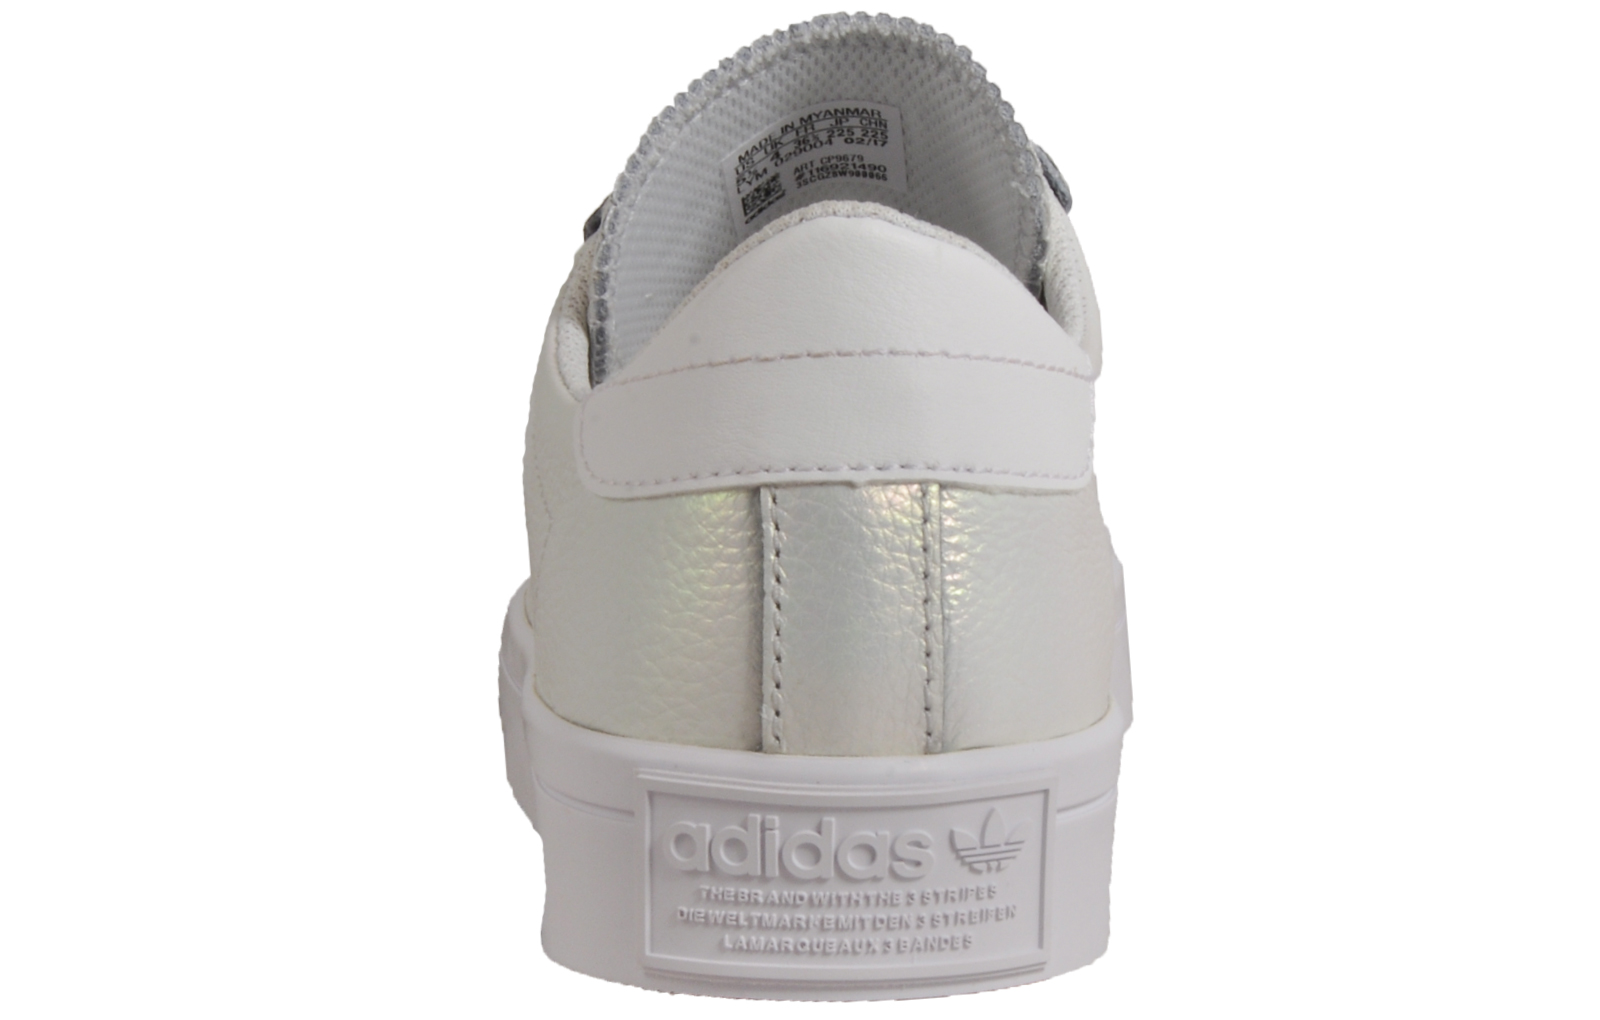 2d0ebf8aa2a2 Adidas Originals Court Vantage Women s Fashion Retro Trainers Pearlescent  White